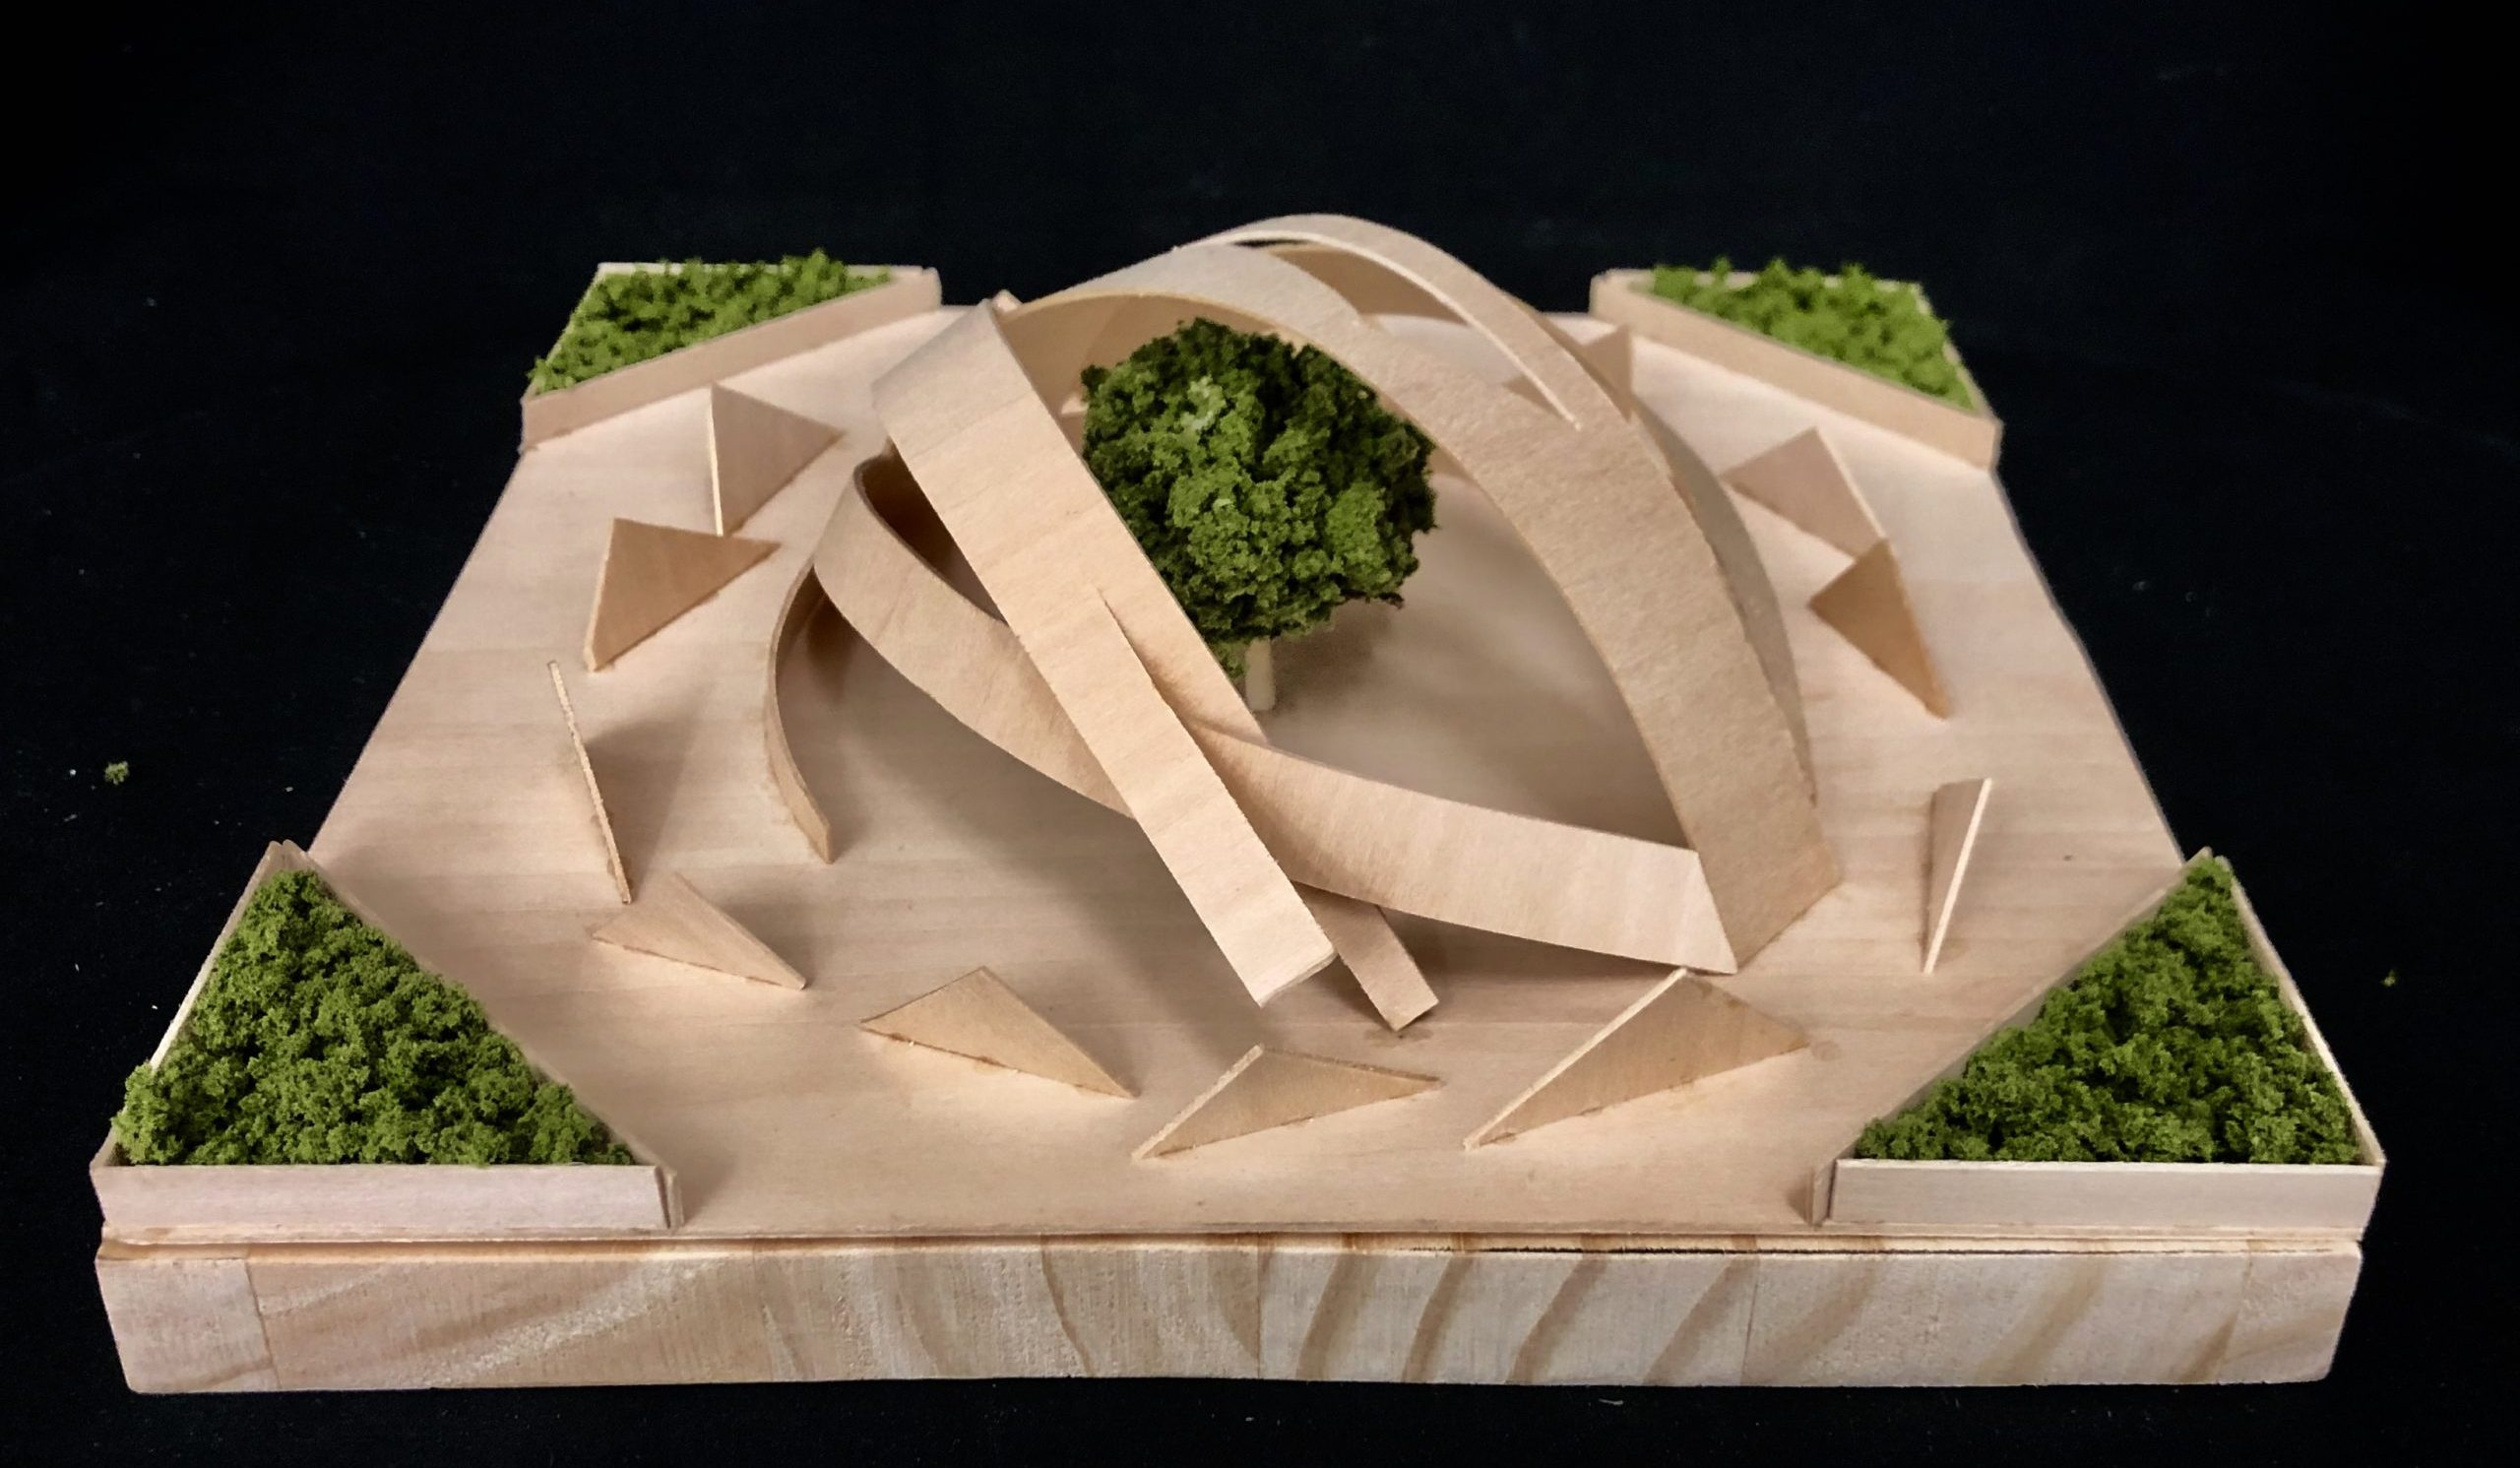 Wood model of curved surfaces